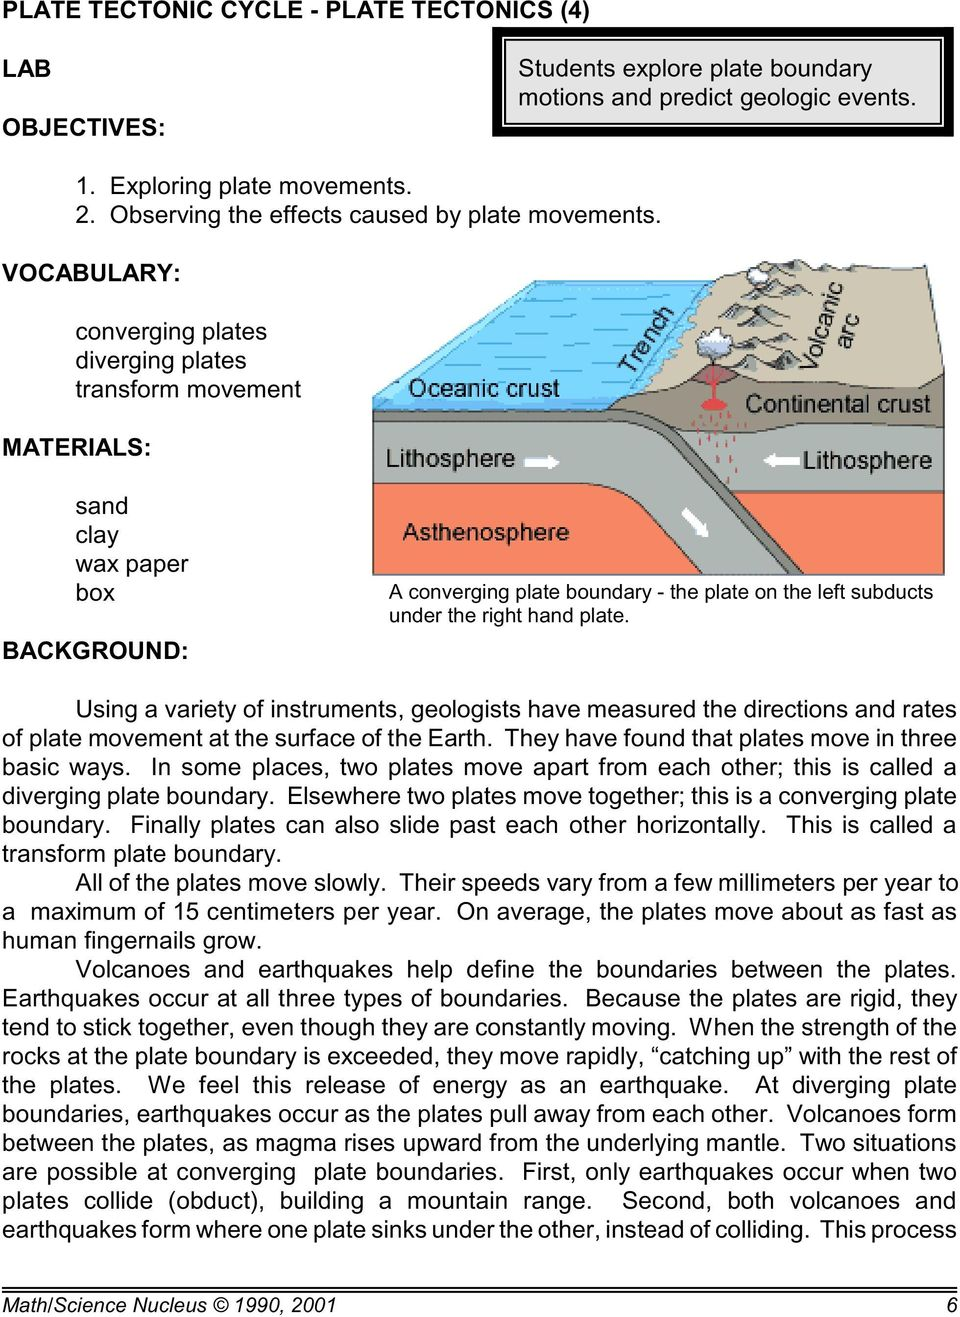 VOCABULARY: converging plates diverging plates transform movement MATERIALS: sand clay wax paper box BACKGROUND: A converging plate boundary - the plate on the left subducts under the right hand